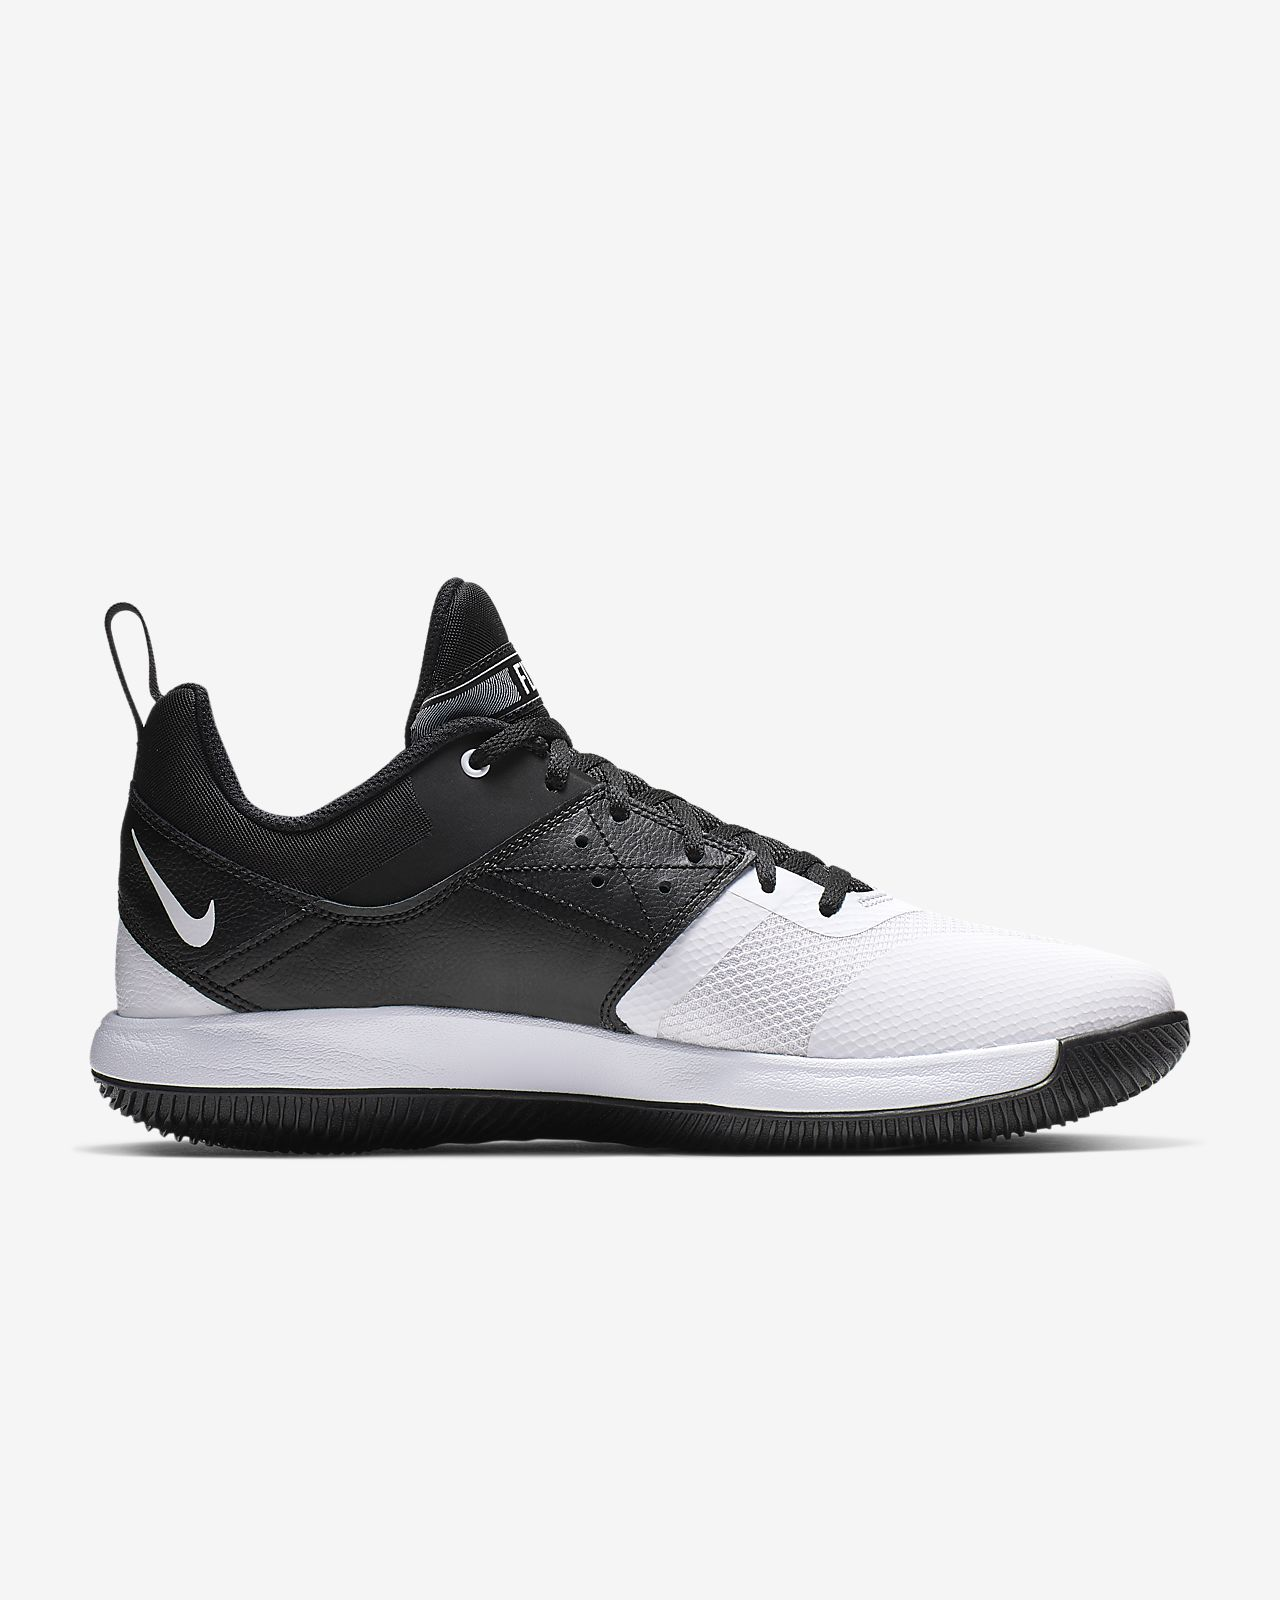 49a16a4c By Low II Basketball Shoe Nike Fly.By Low II Basketball Shoe